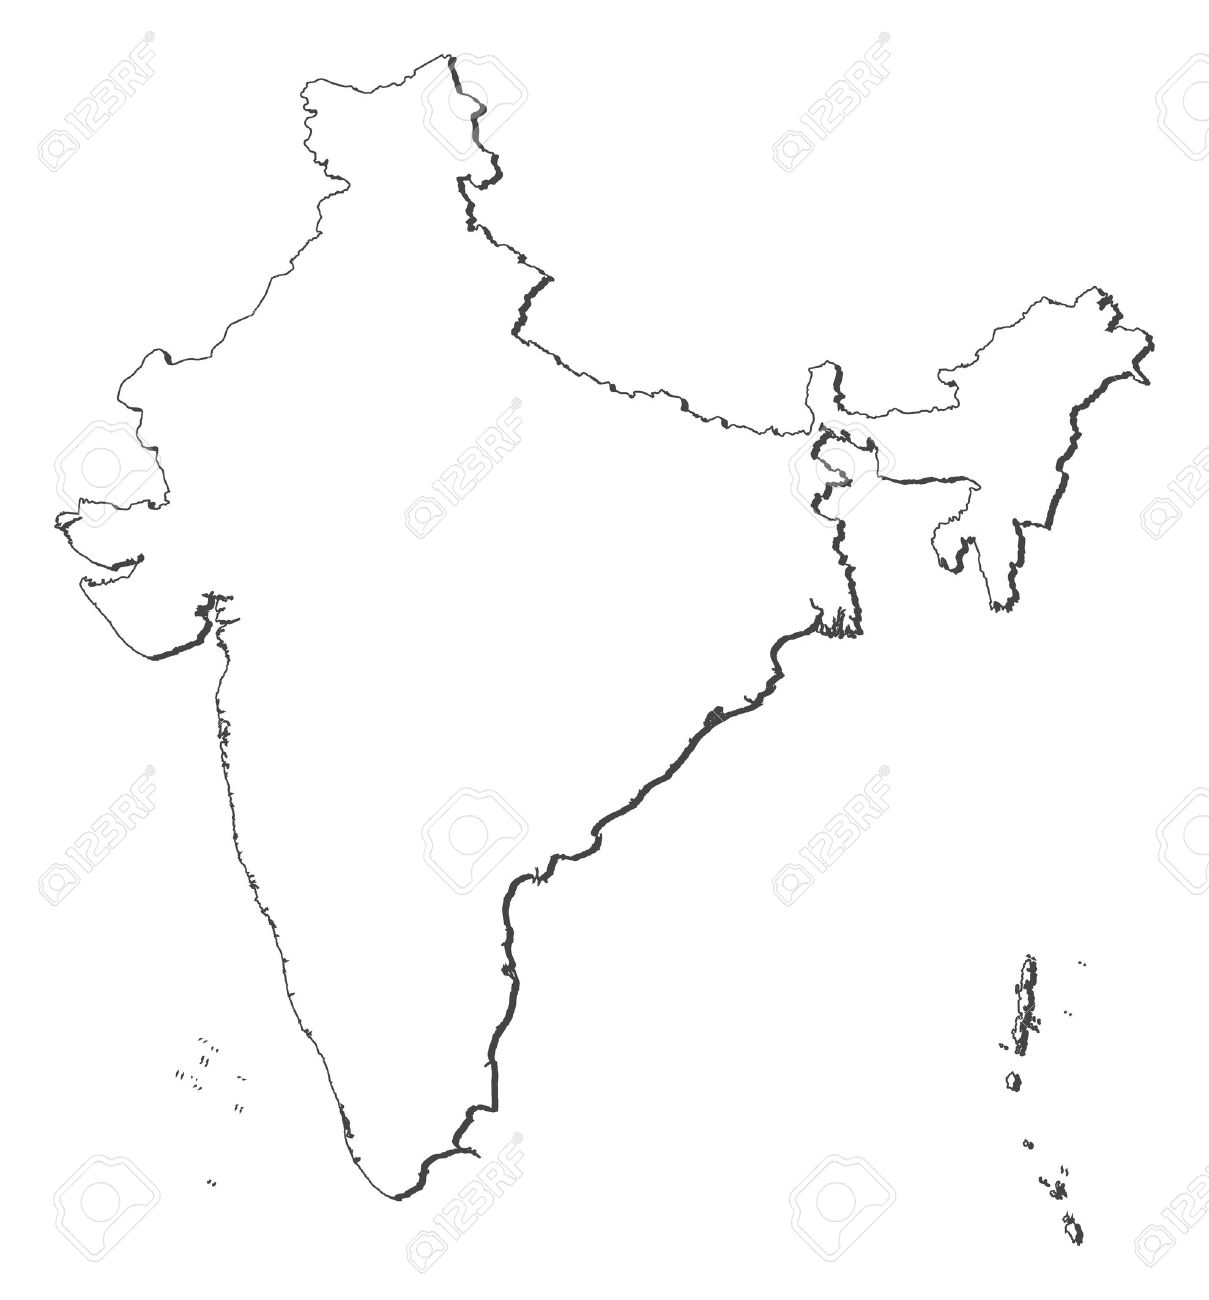 Political map of India with the several states. - 11451575